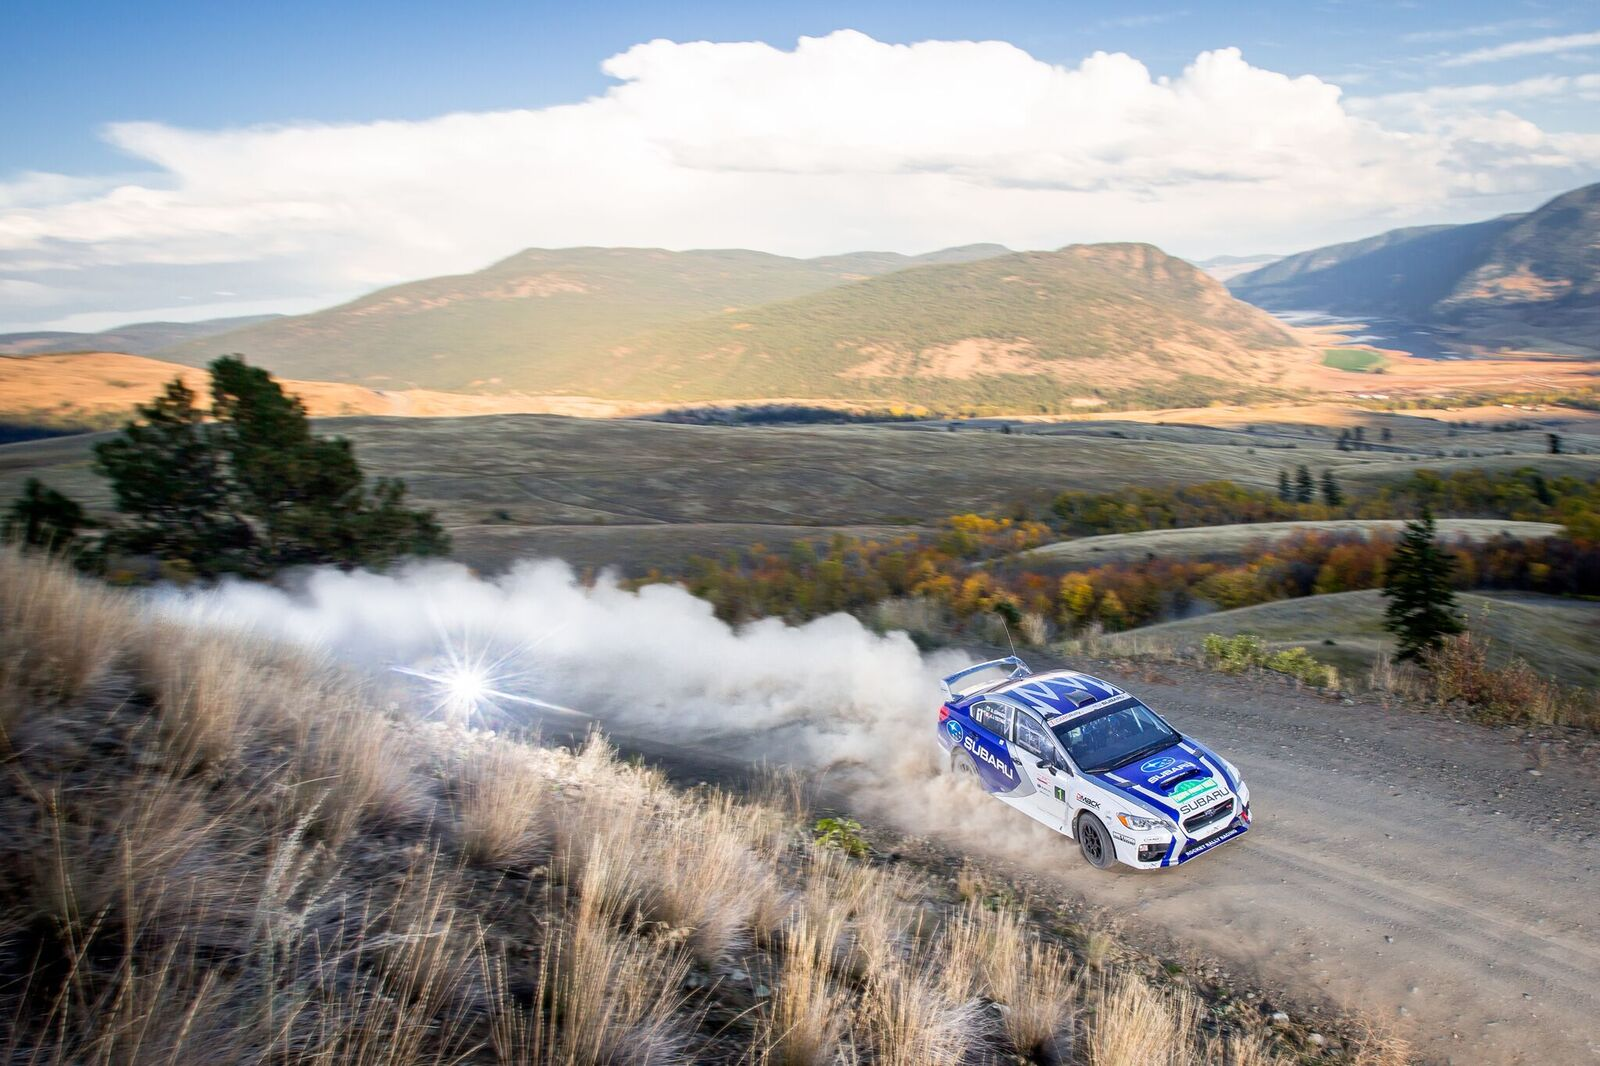 MOTUL ANNOUNCED AS THE OFFICIAL LUBRICANT PARTNER OF THE SUBARU RALLY TEAM CANADA